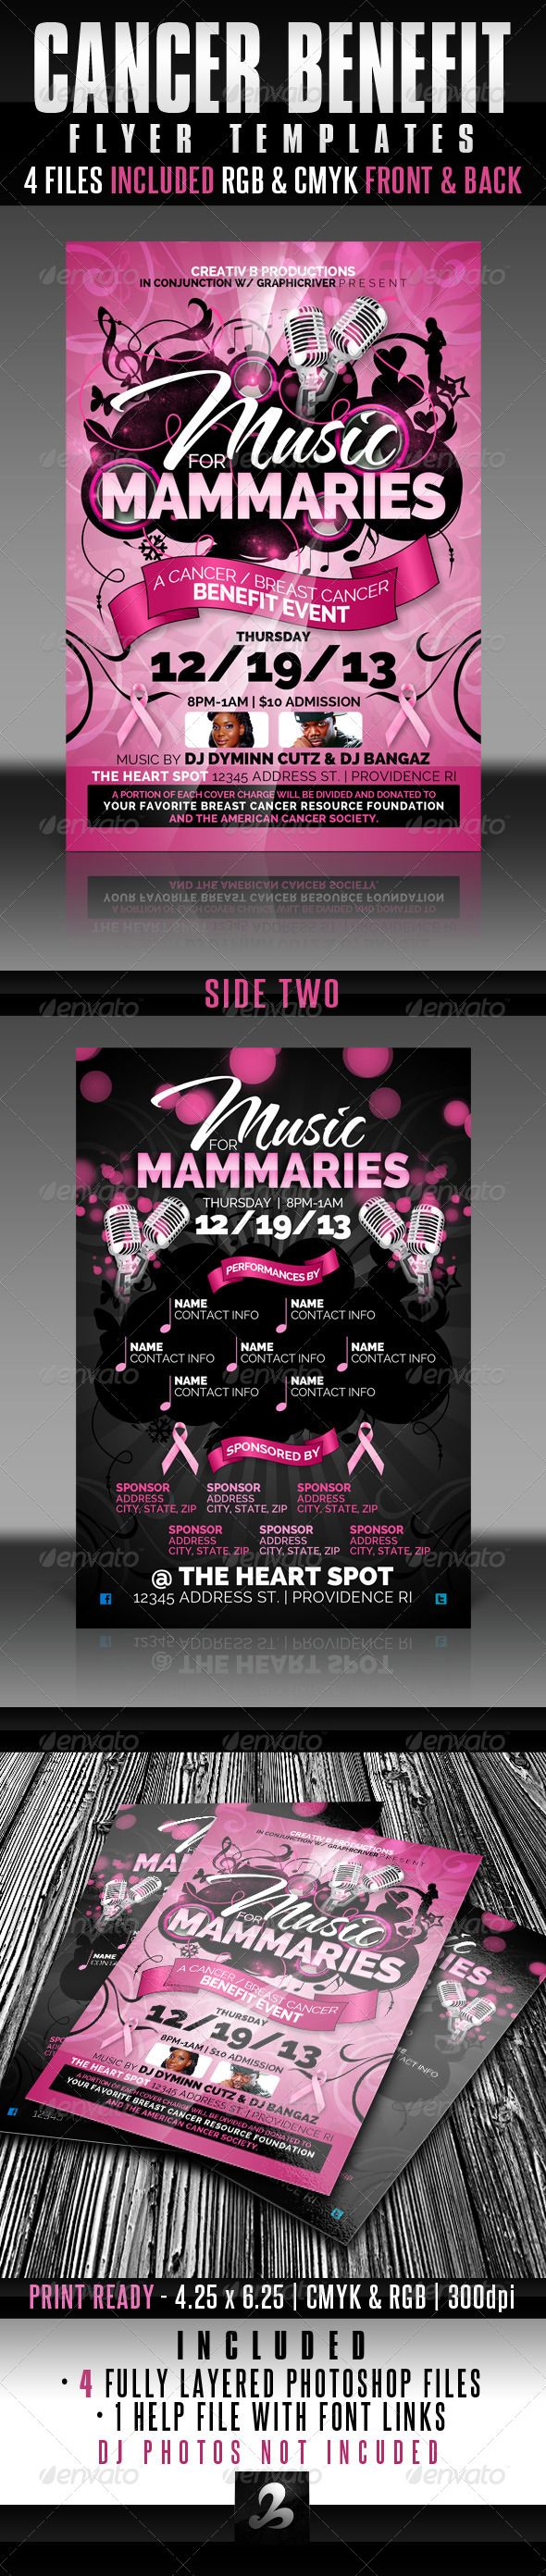 cancer benefit flyer templates graphicriver use this flyer and or